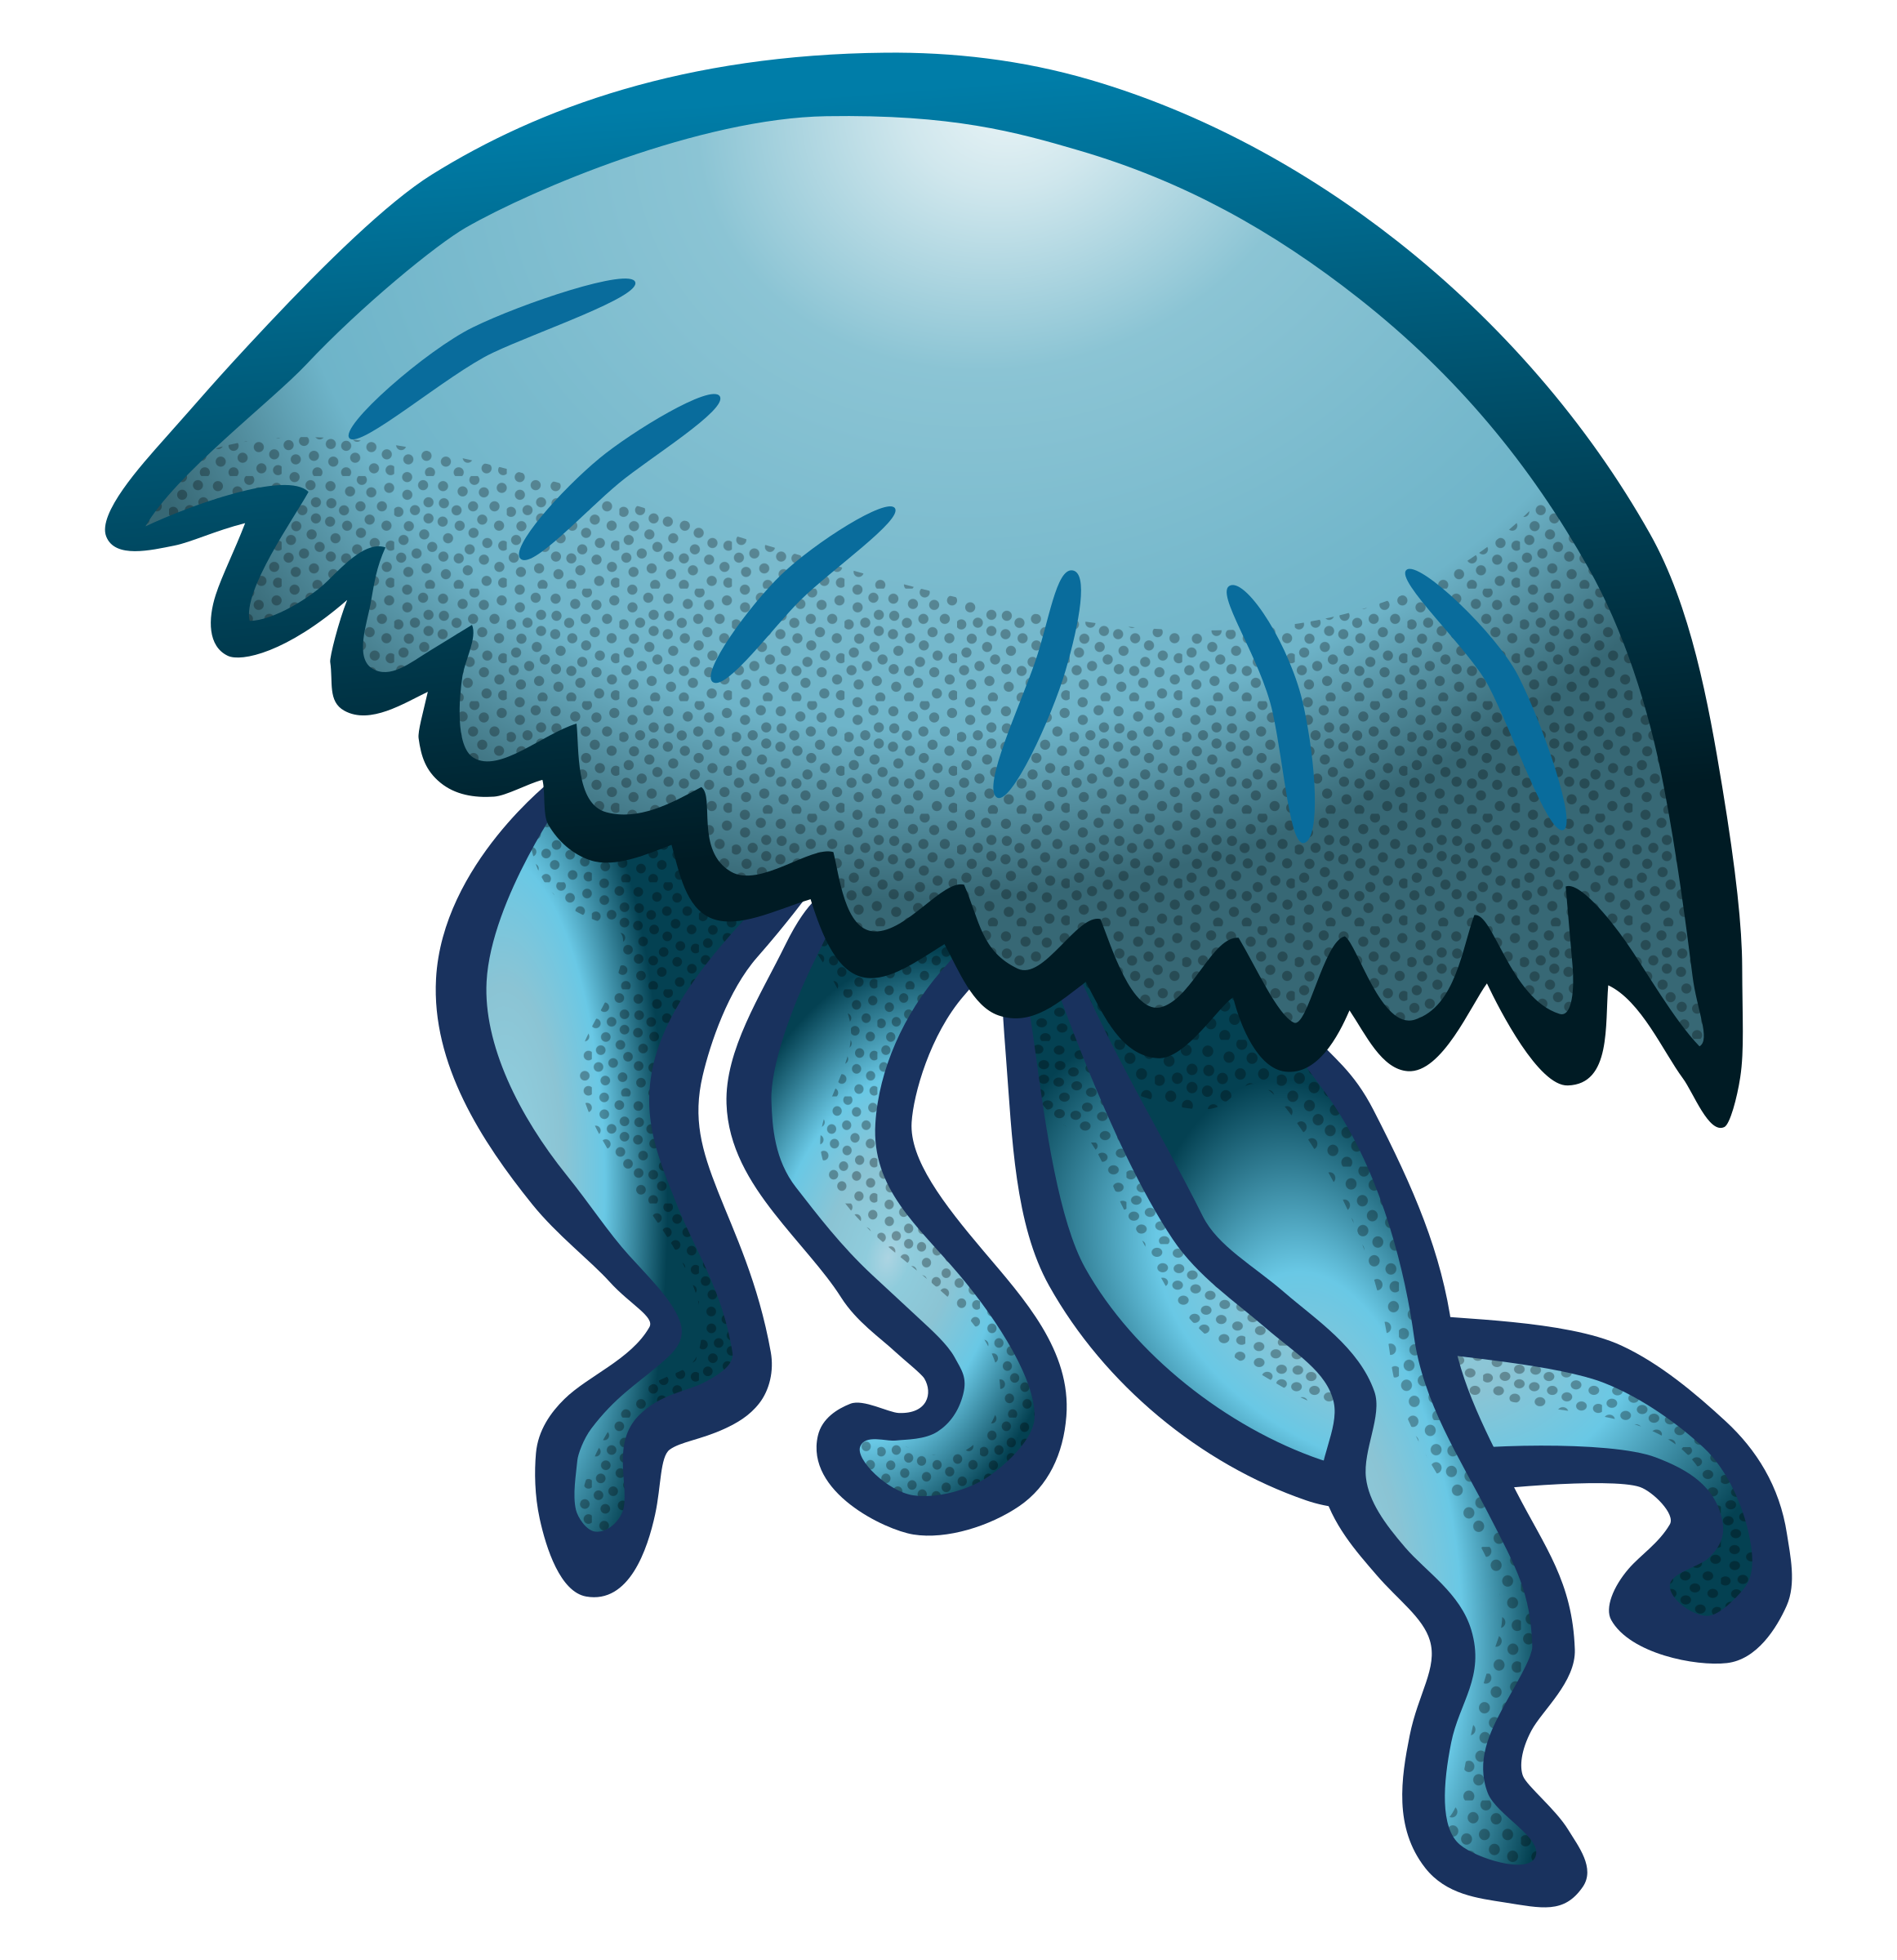 3 clipart jellyfish. Coloured big image png